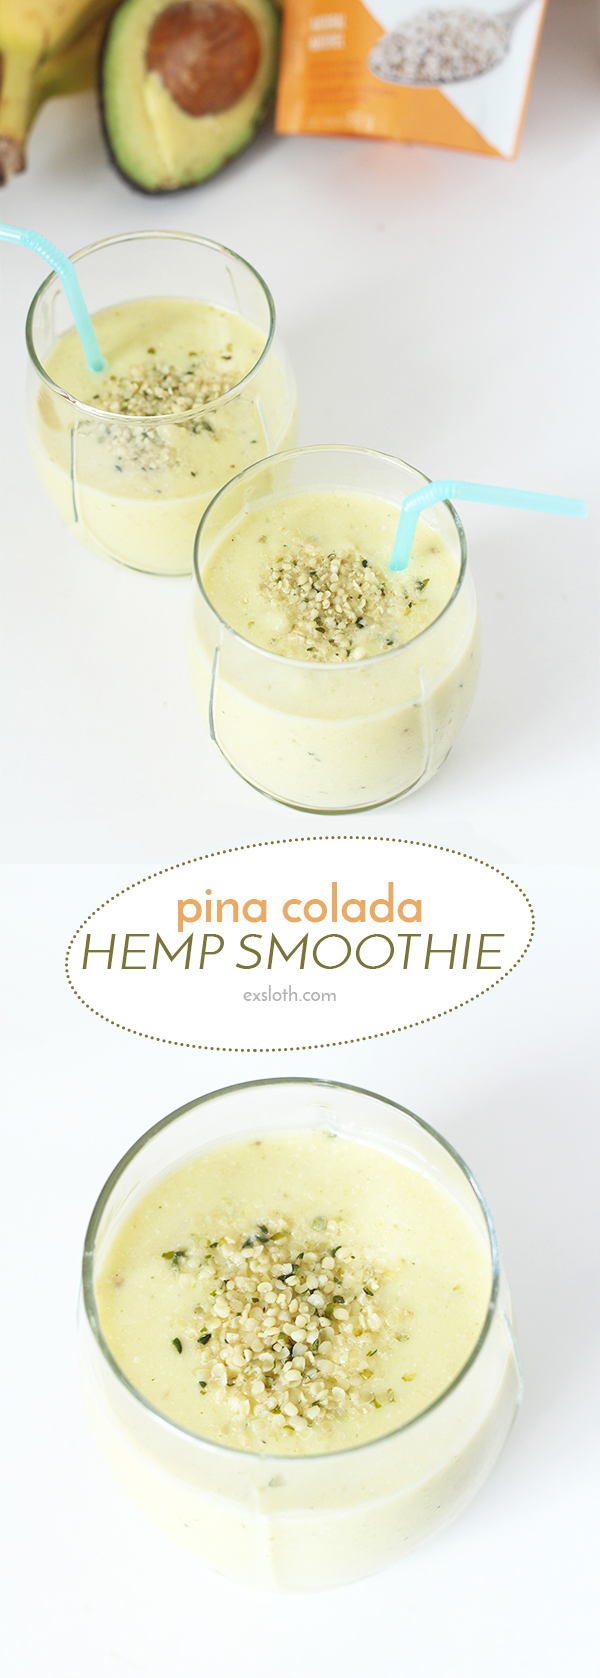 pina-collada-hemp-smoothie